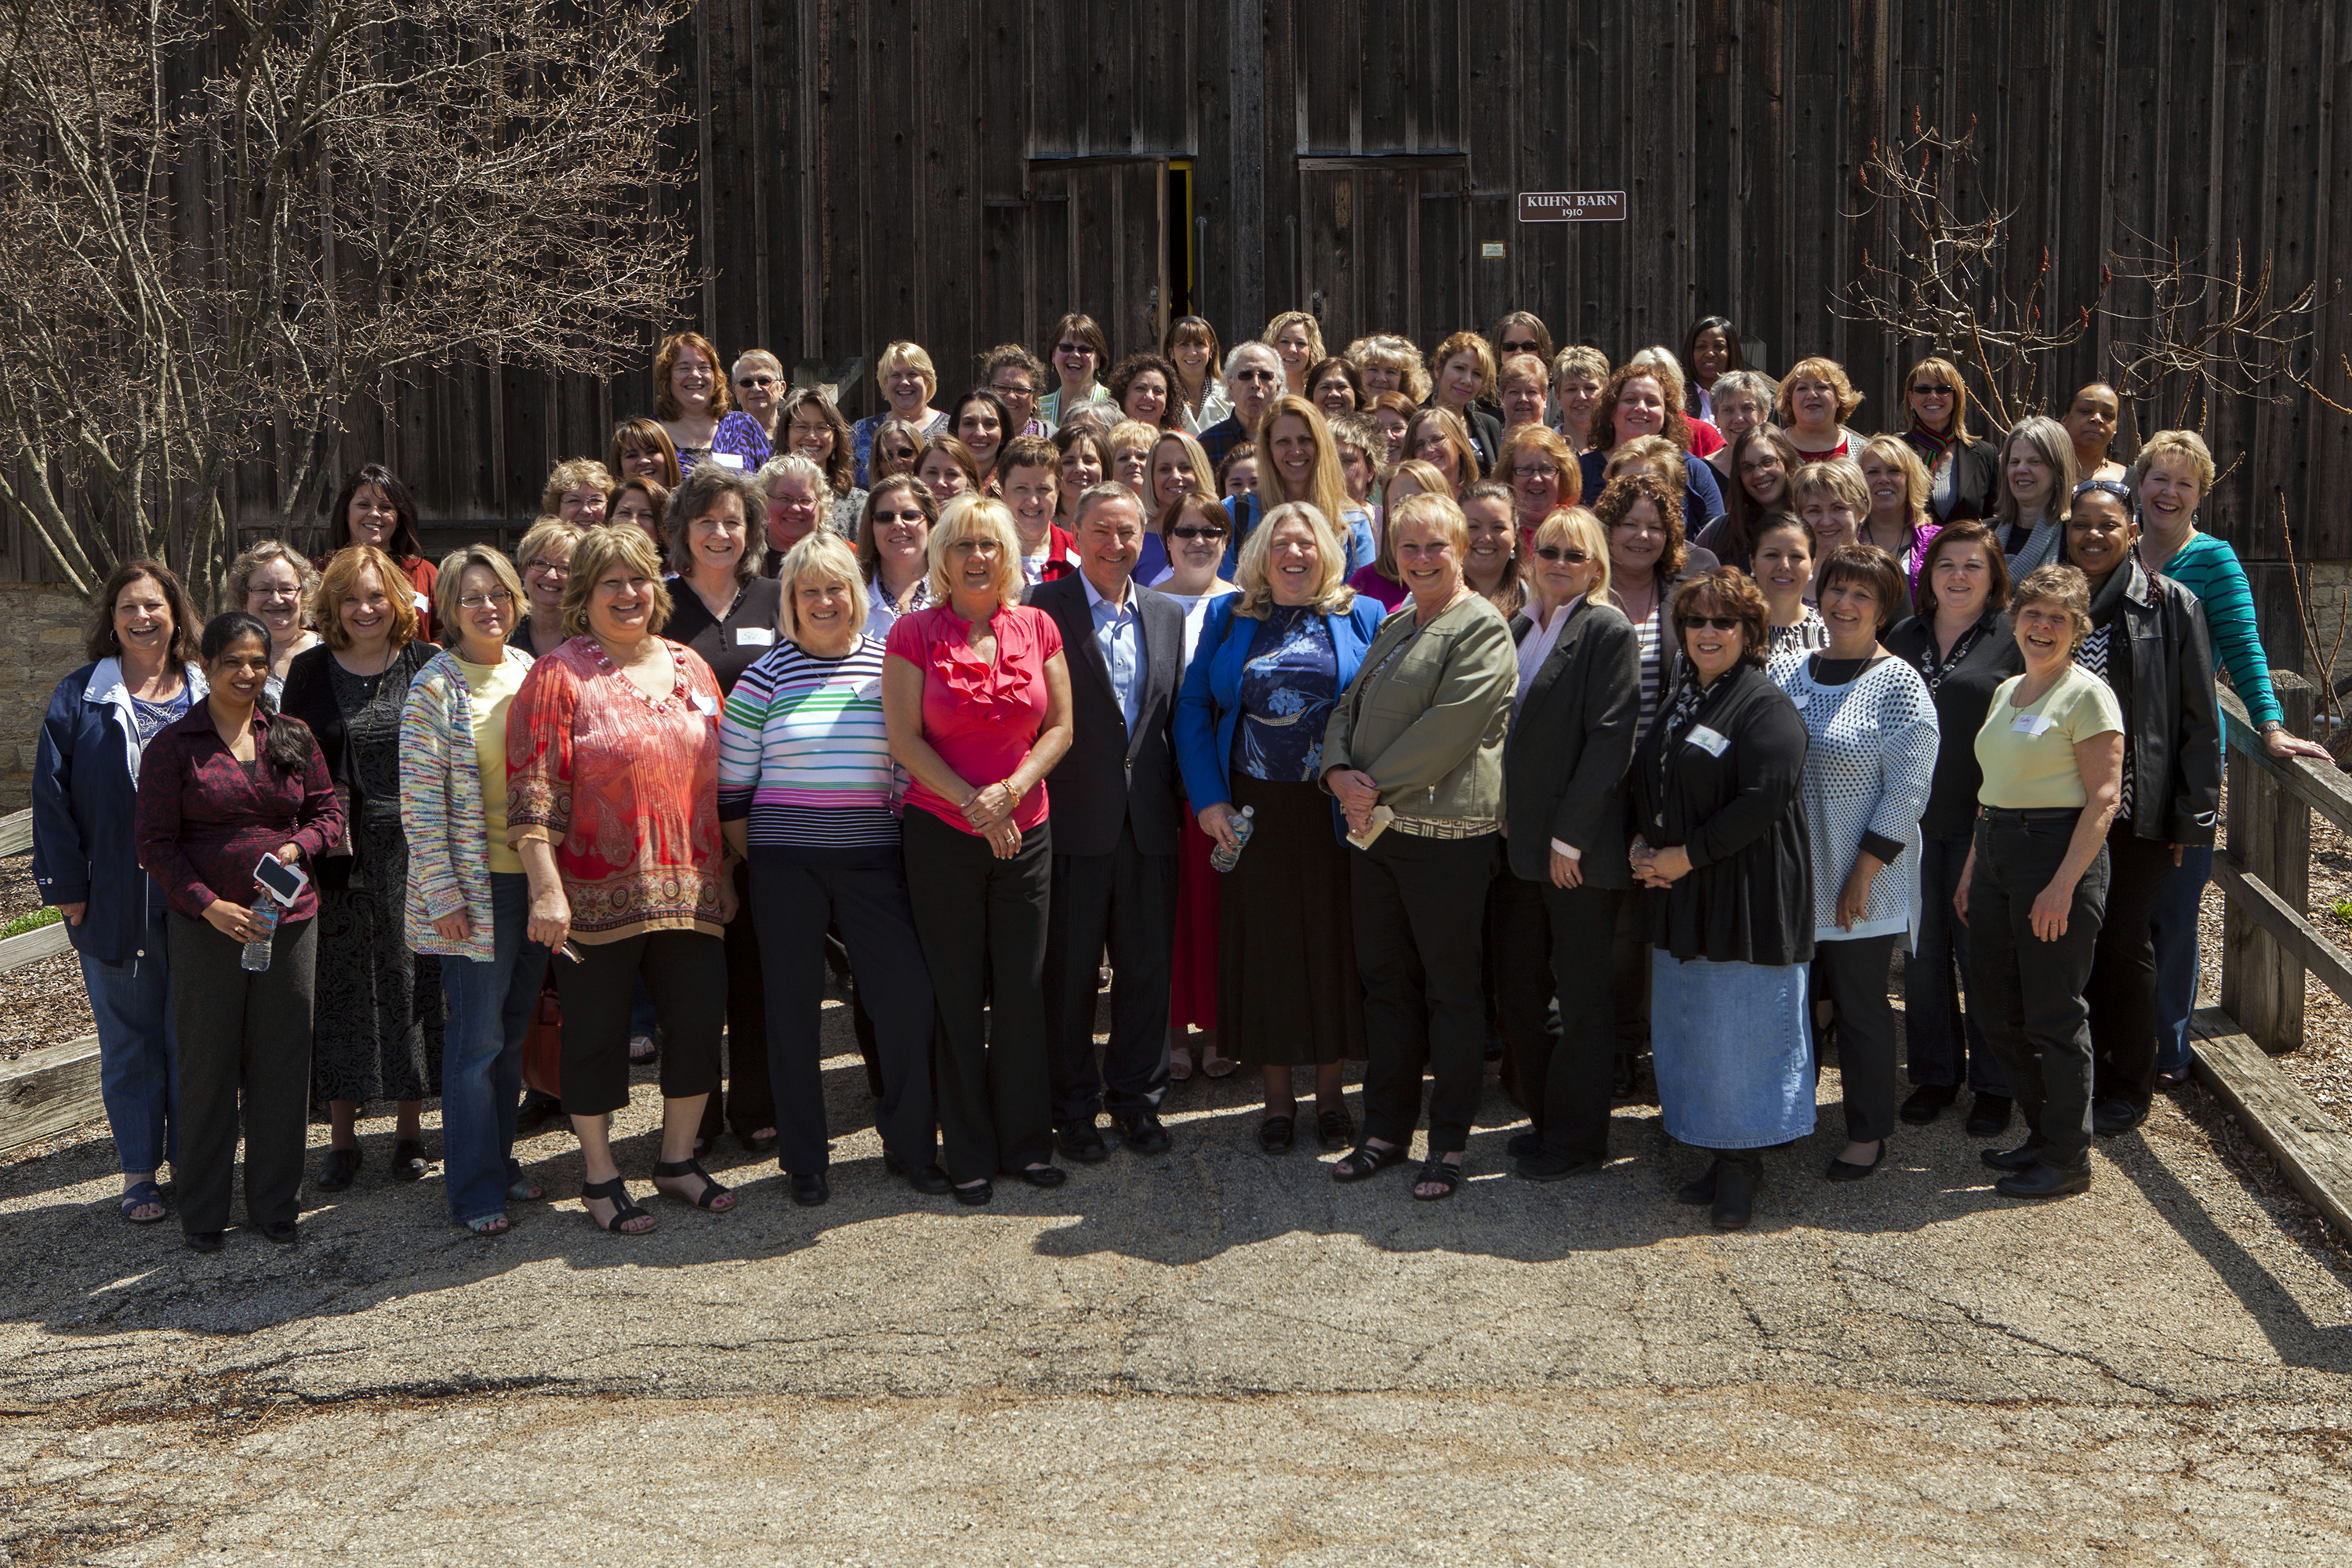 Wednesday was Administrative Professionals Appreciation Day. Fermilab celebrated the day with a luncheon at Kuhn Barn. Photo: Cindy Arnold